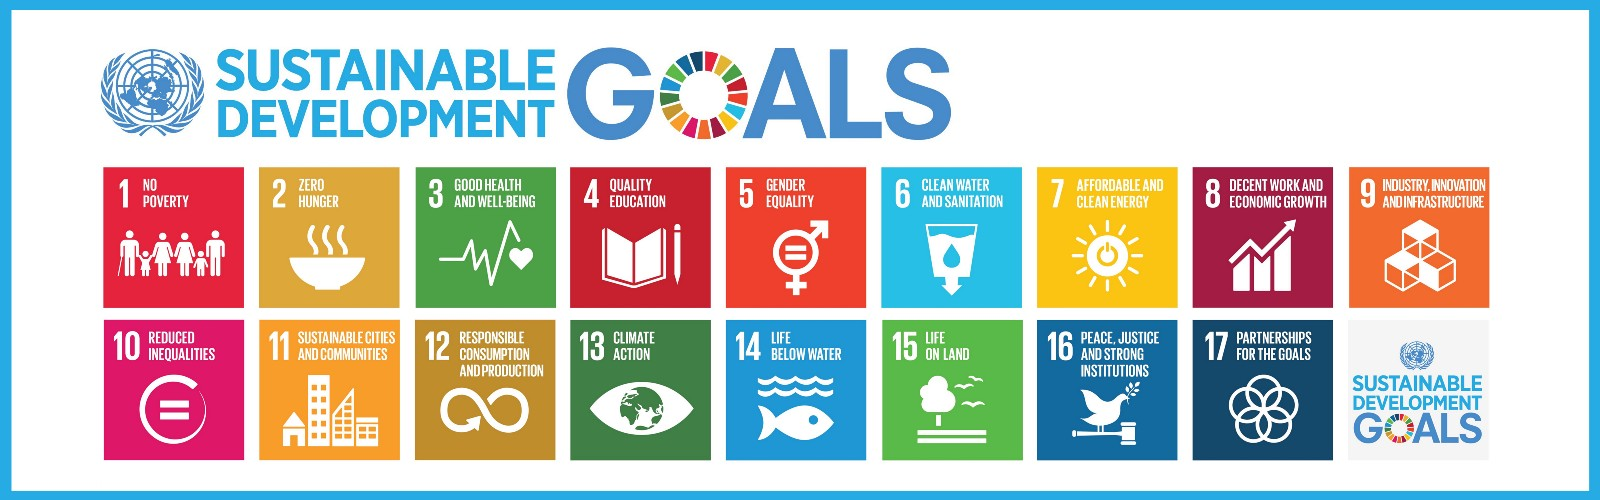 the united nation development goals Conserve and sustainably use the oceans, seas and marine resources for sustainable development protect, restore and promote sustainable use of terrestrial ecosystems, sustainably manage forests, combat desertification, and halt and reverse land degradation and halt biodiversity loss.